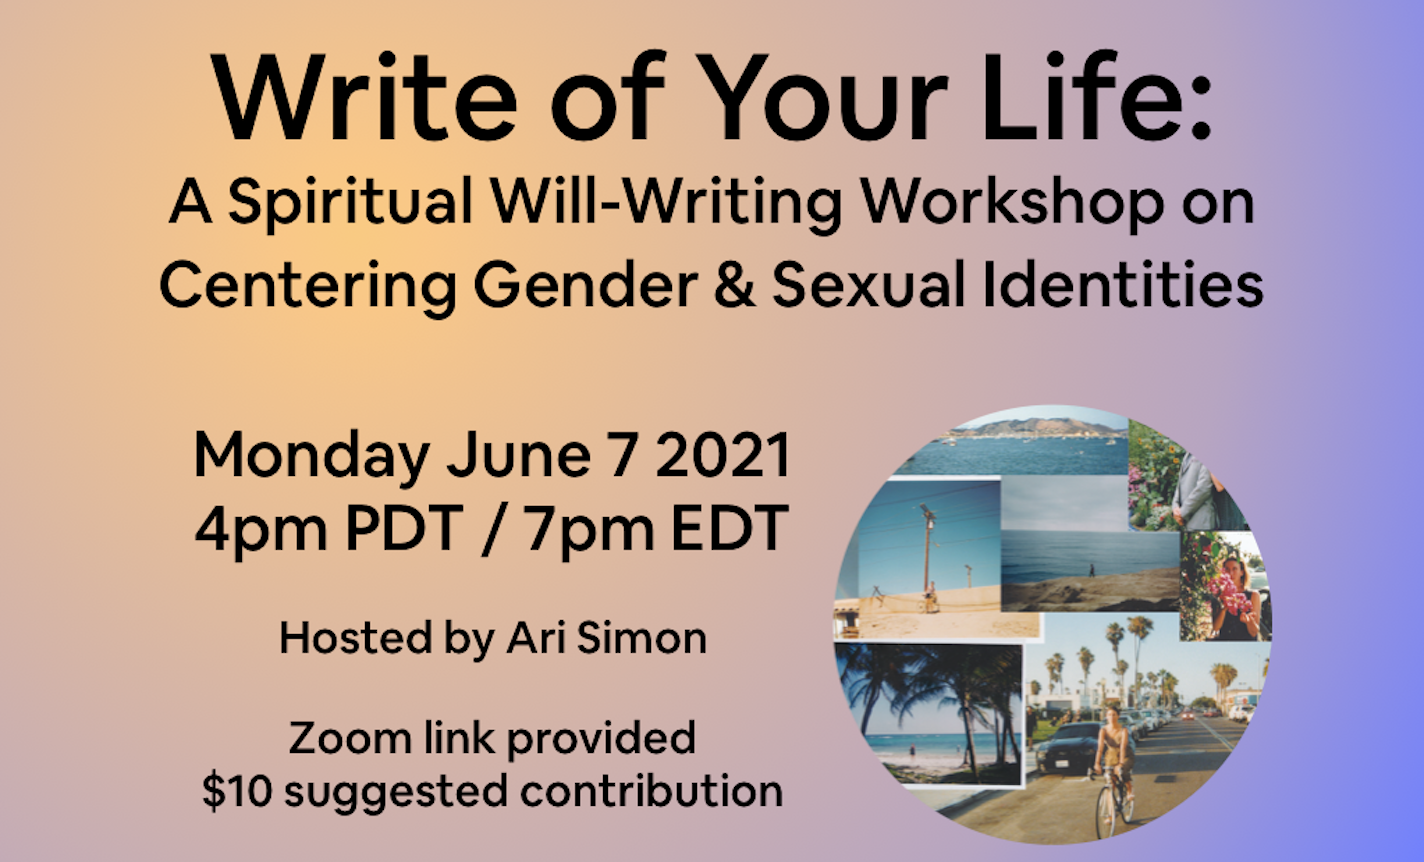 Write of Your Life: Gender & Sexuality in Spiritual Wills